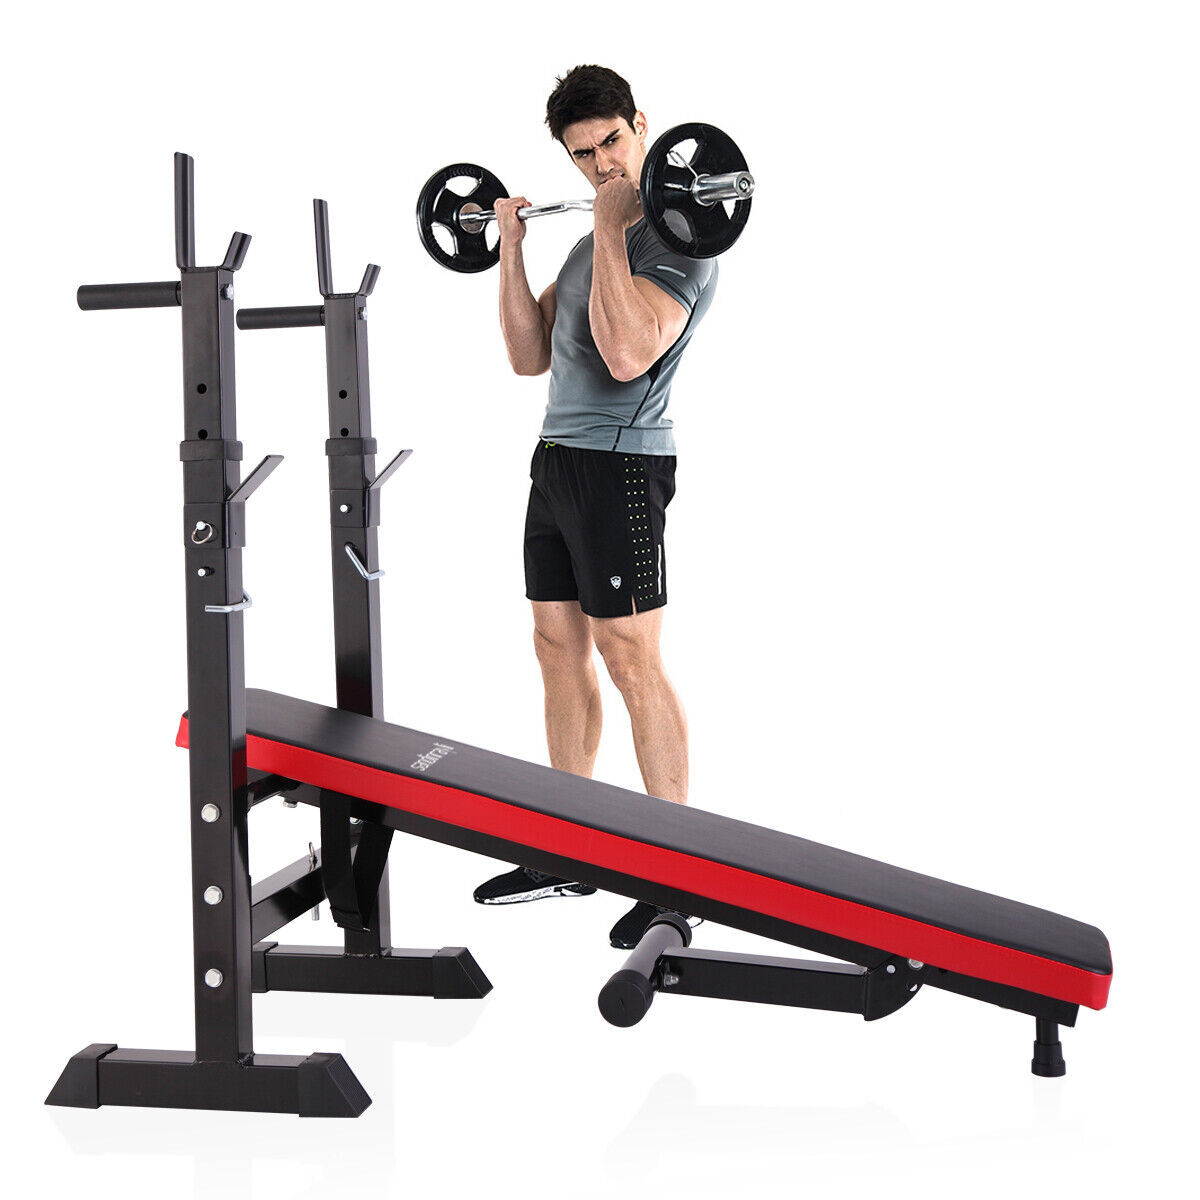 Weight Lifting Bench Fitness Body Exercise Home Exercise Ben